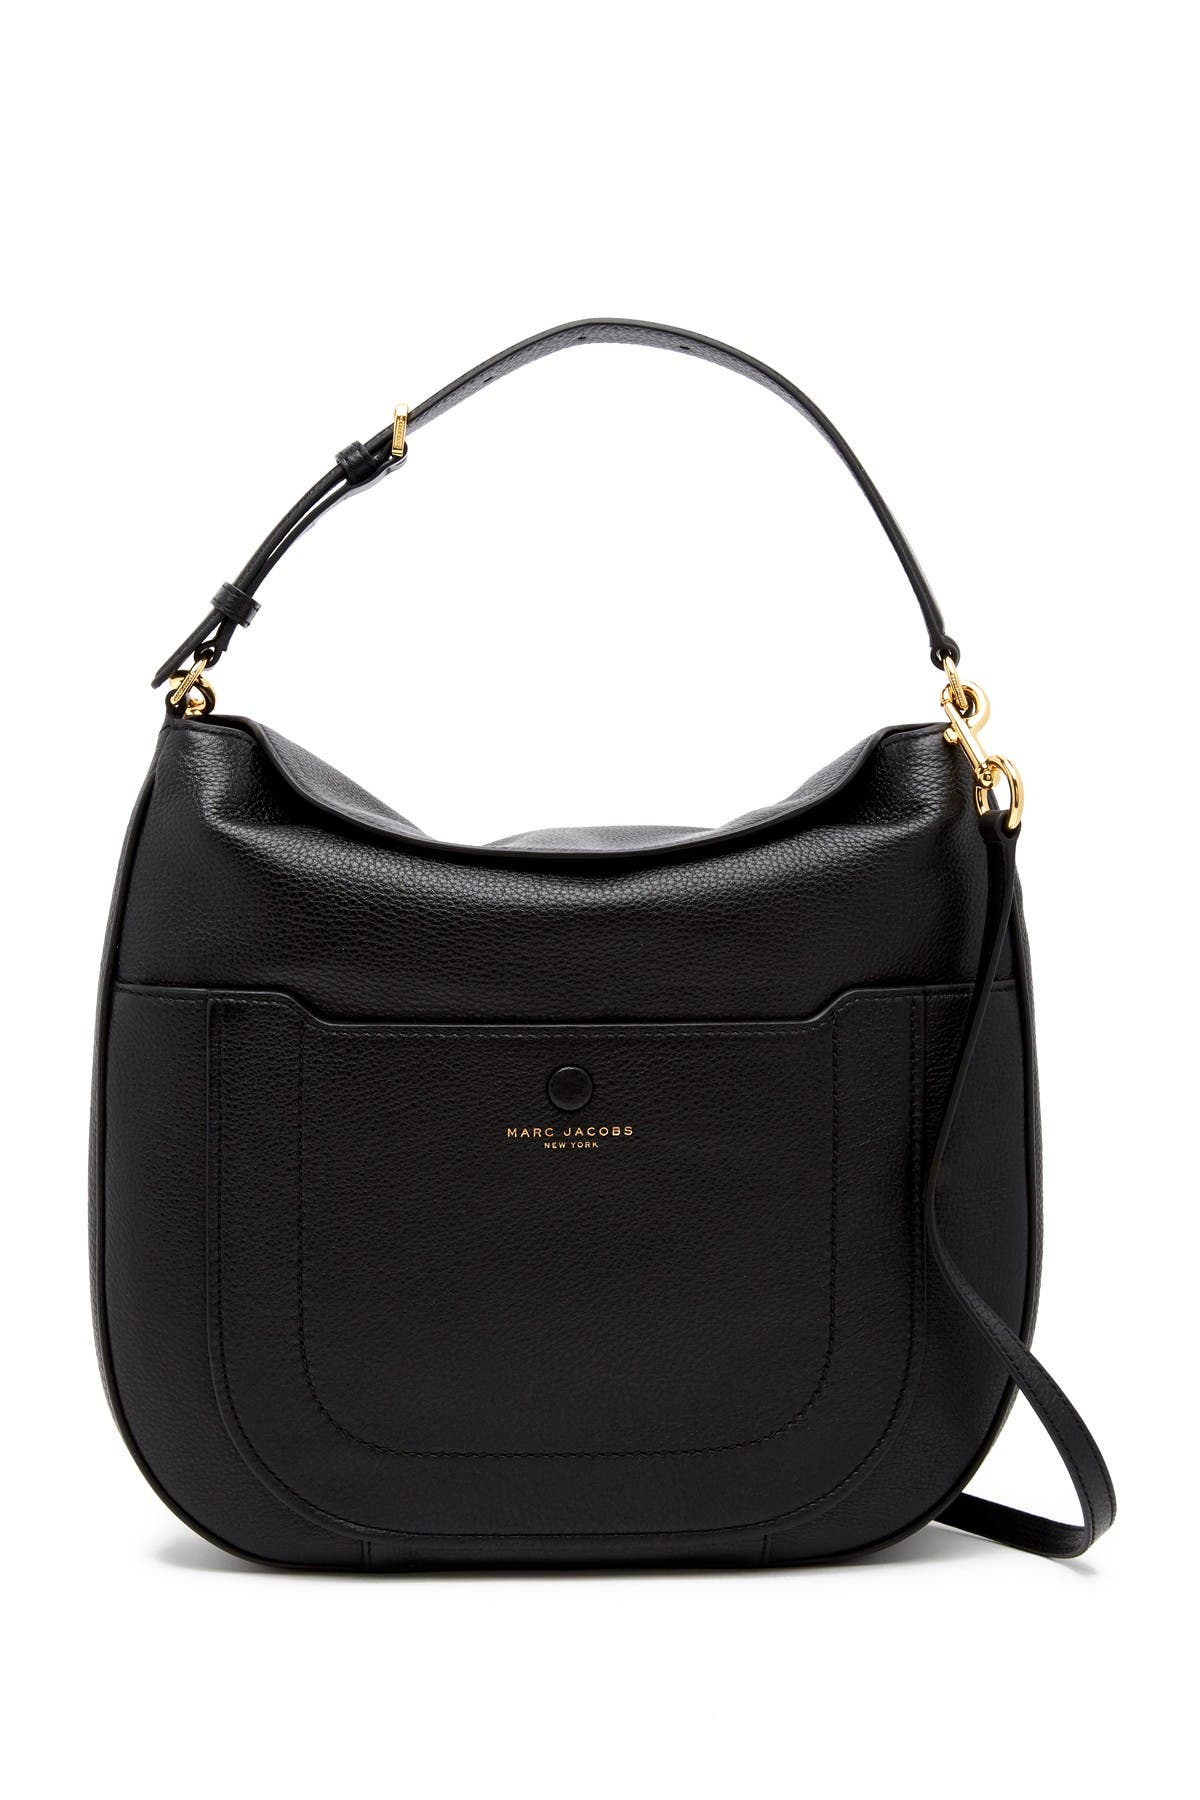 Image of Marc Jacobs Empire City Leather Hobo Bag